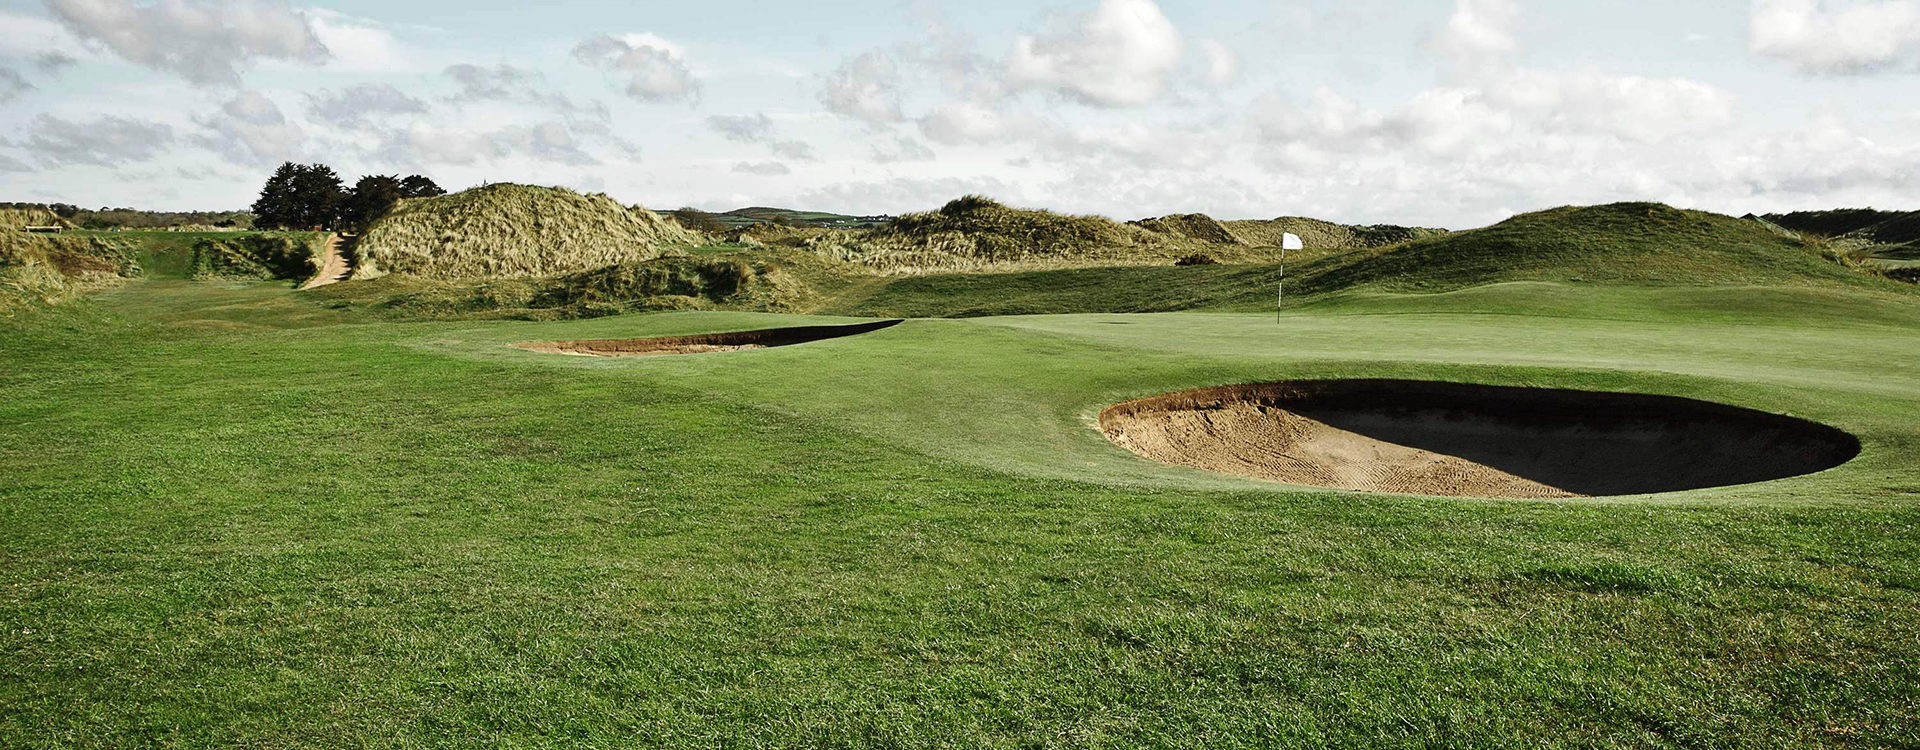 County Louth Golf Club - Club Choice Ireland